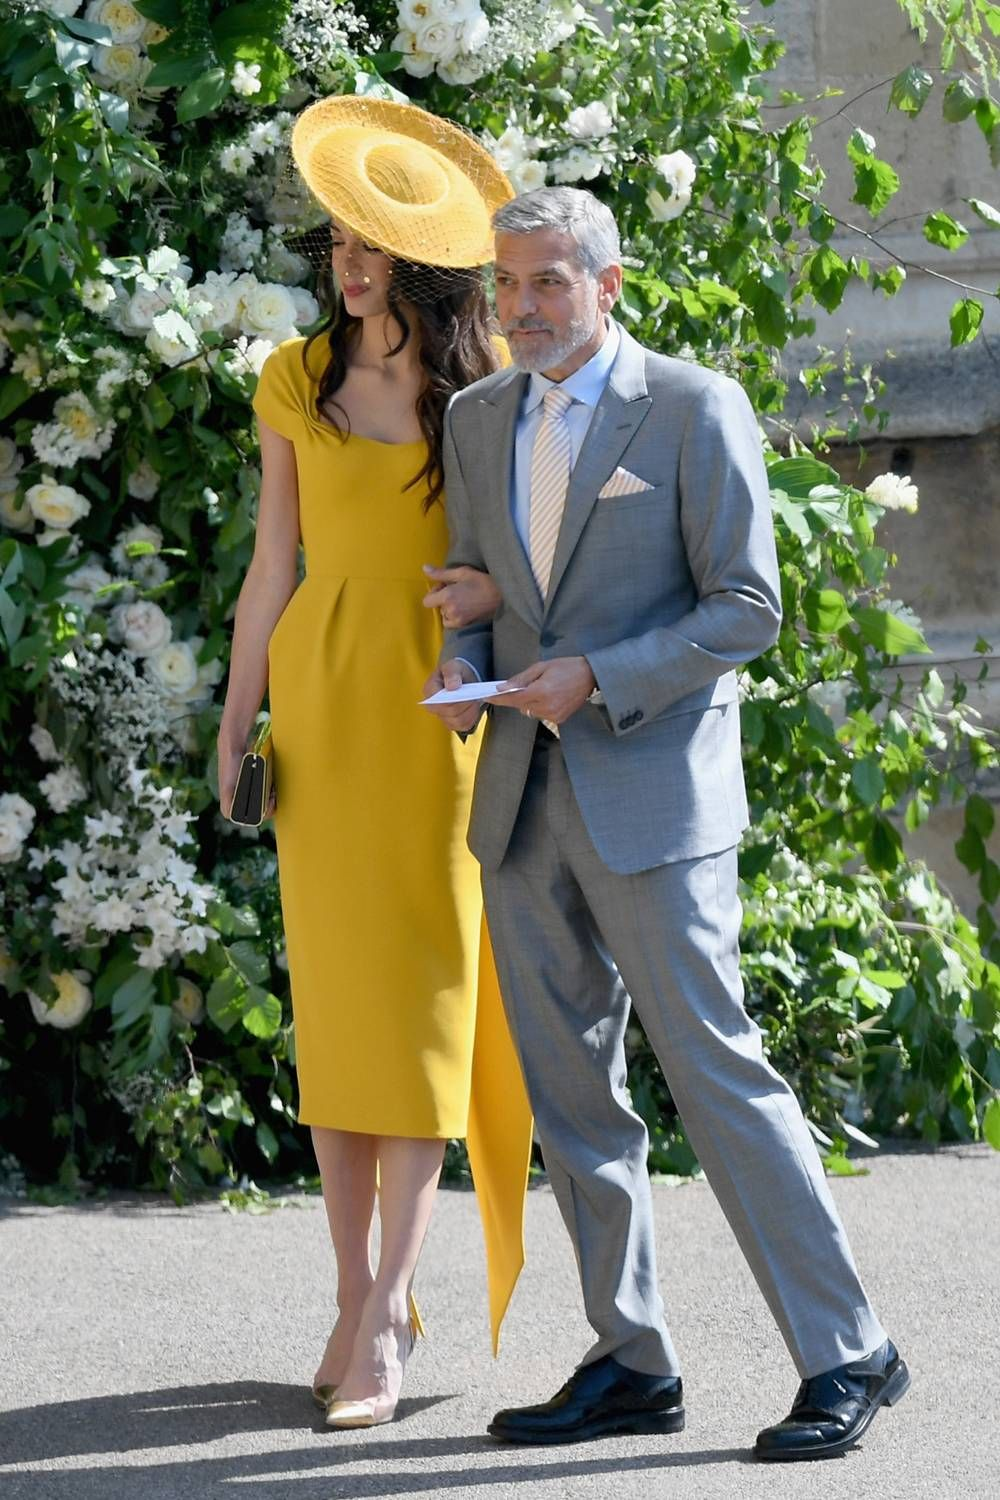 30 Insanely Chic Royal Wedding Guests That Really Brought Their A Game Royal Wedding Outfits Wedding Attire Guest Royal Wedding Guests Outfits [ 1500 x 1000 Pixel ]